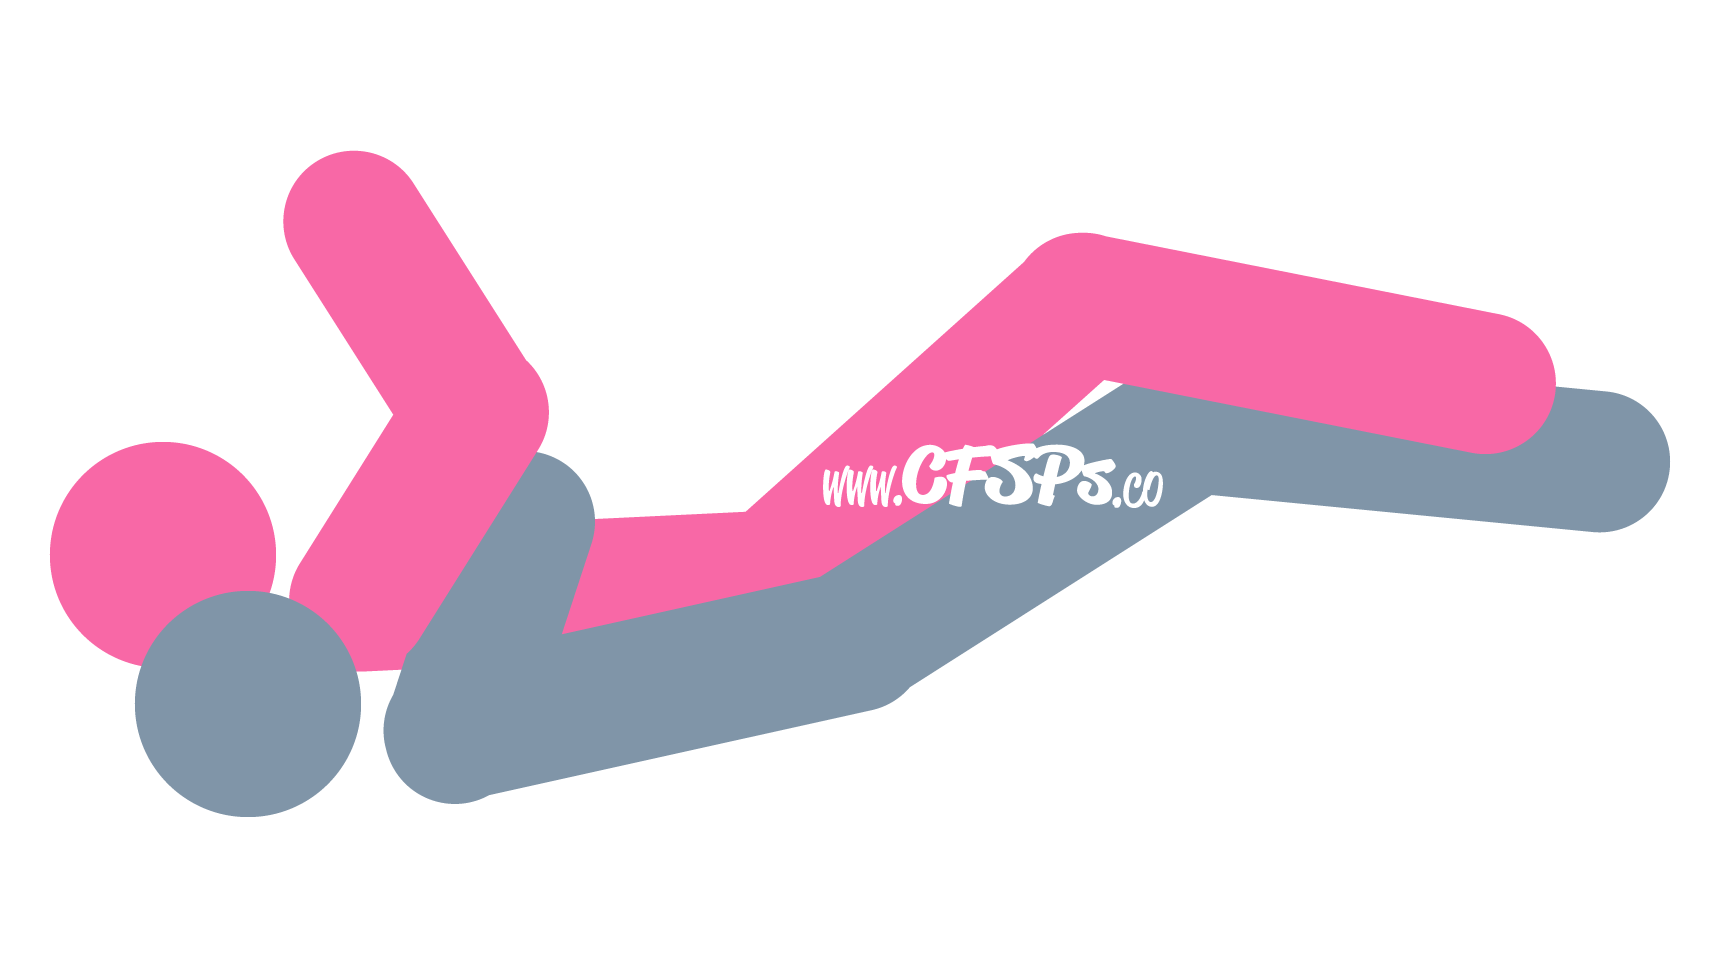 An illustration of the Spooning sex position. This picture demonstrates how Spoon is a very comfortable, rear-entry sex position with g-spot stimulation and access for manual clitoral stimulation.